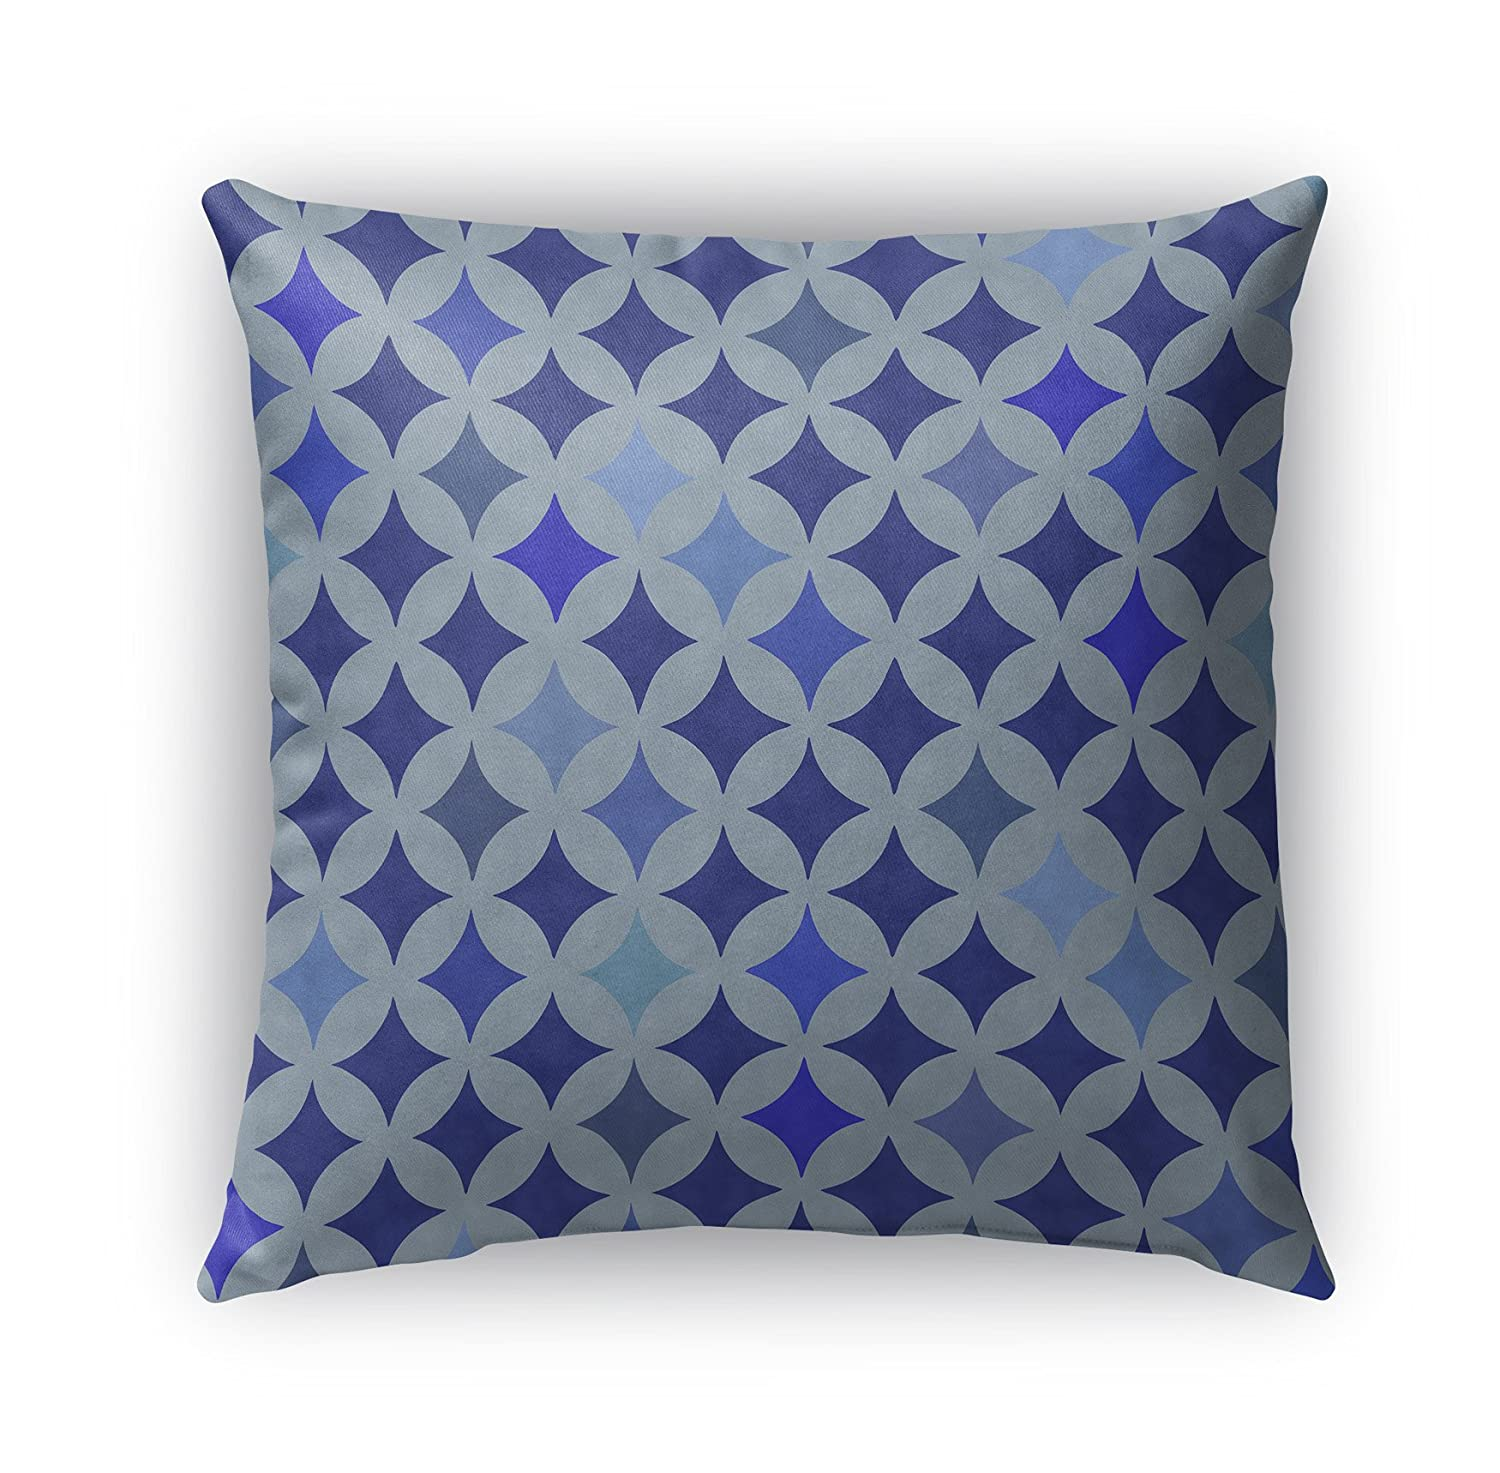 KAVKA Designs Large Diamond Blue Indoor-Outdoor Pillow, (Blue) - MOD Collection, Size: 18X18X6 - (BGAAVC505OD18)